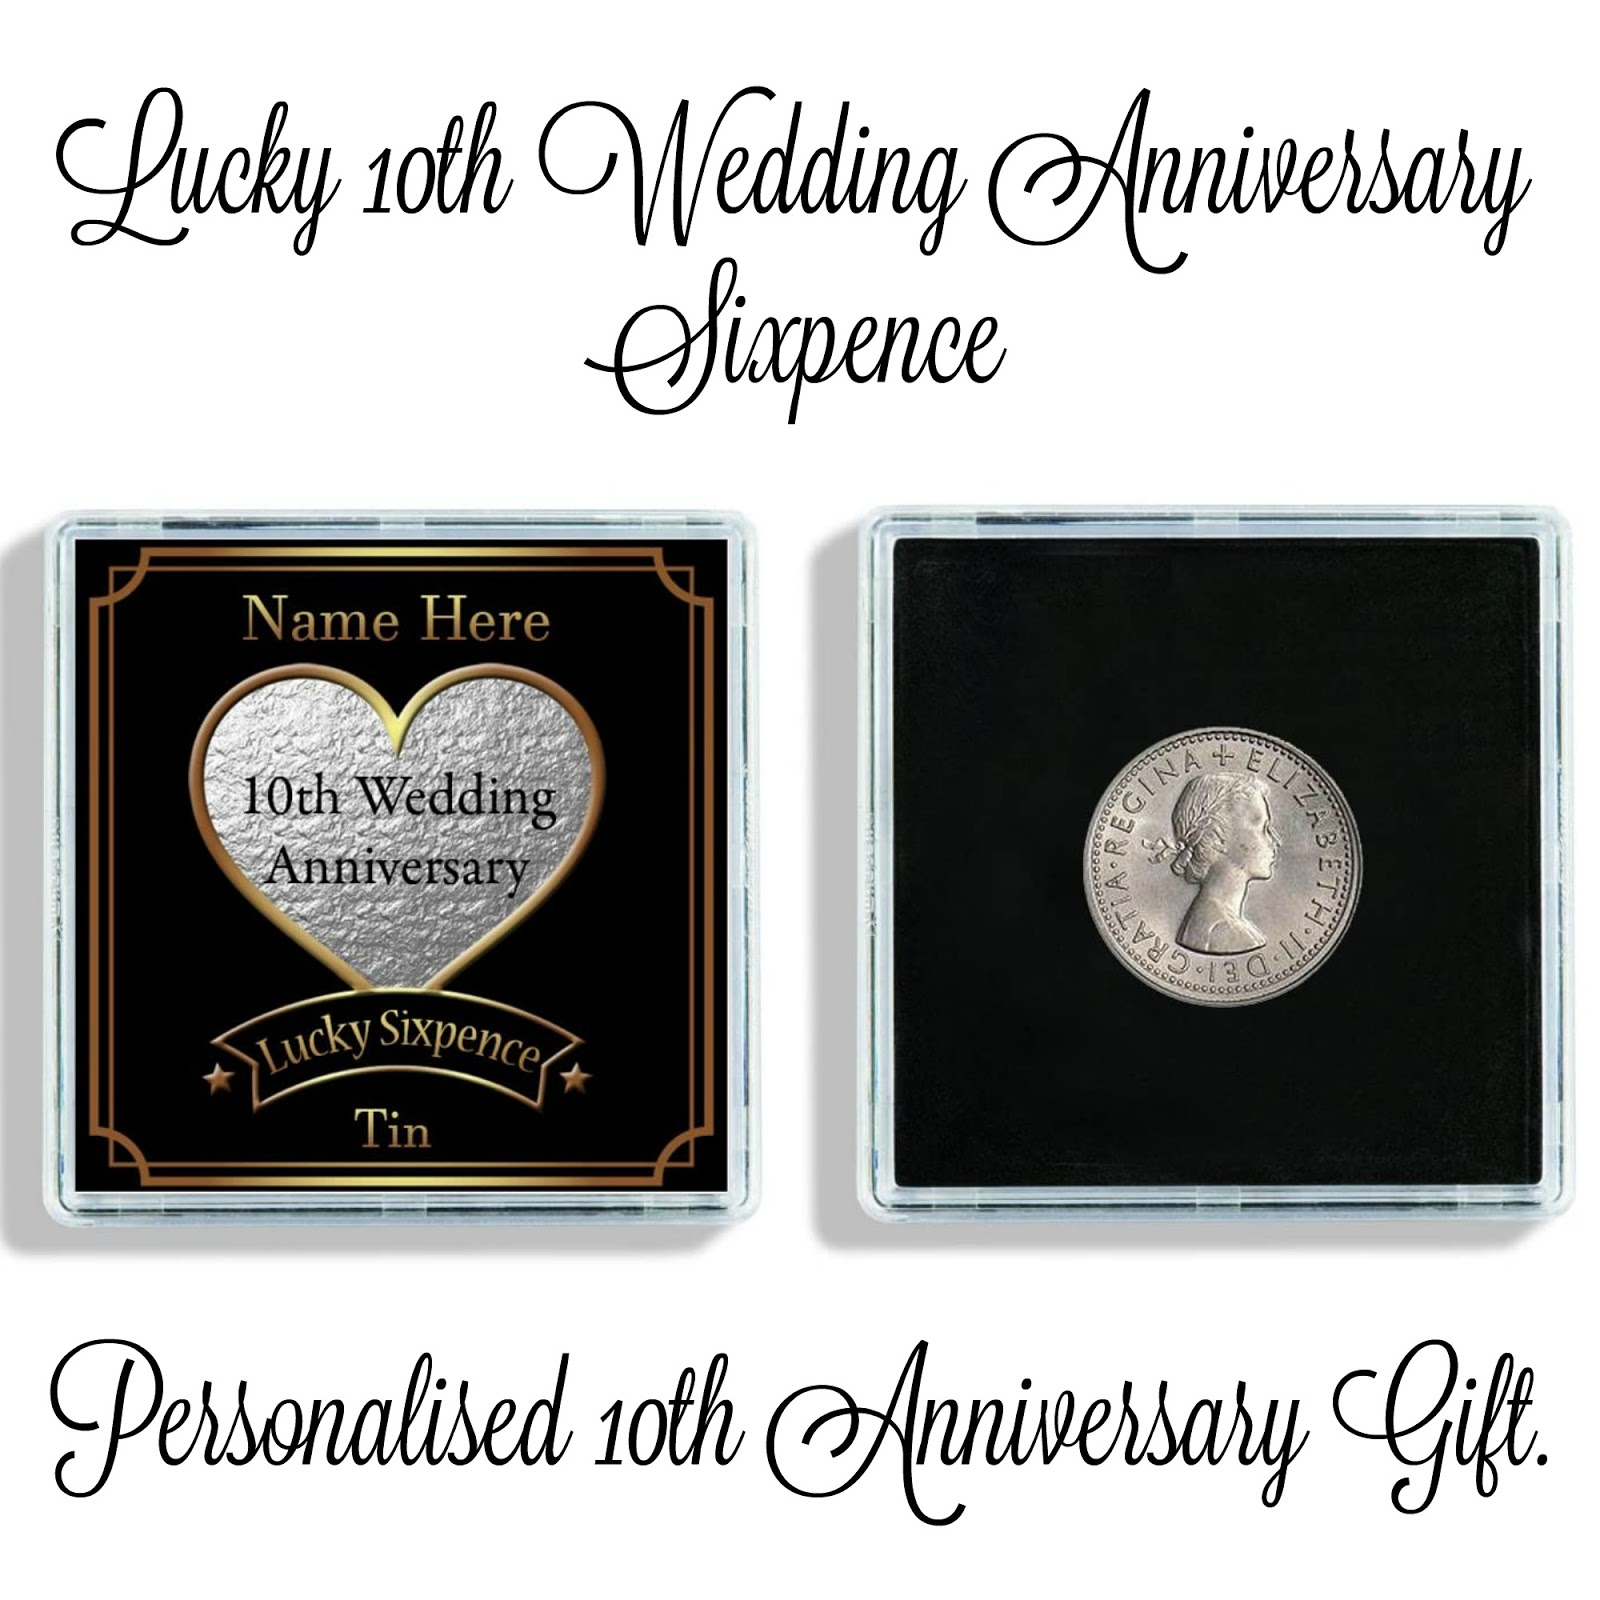 a 10th anniversary lucky sixpence